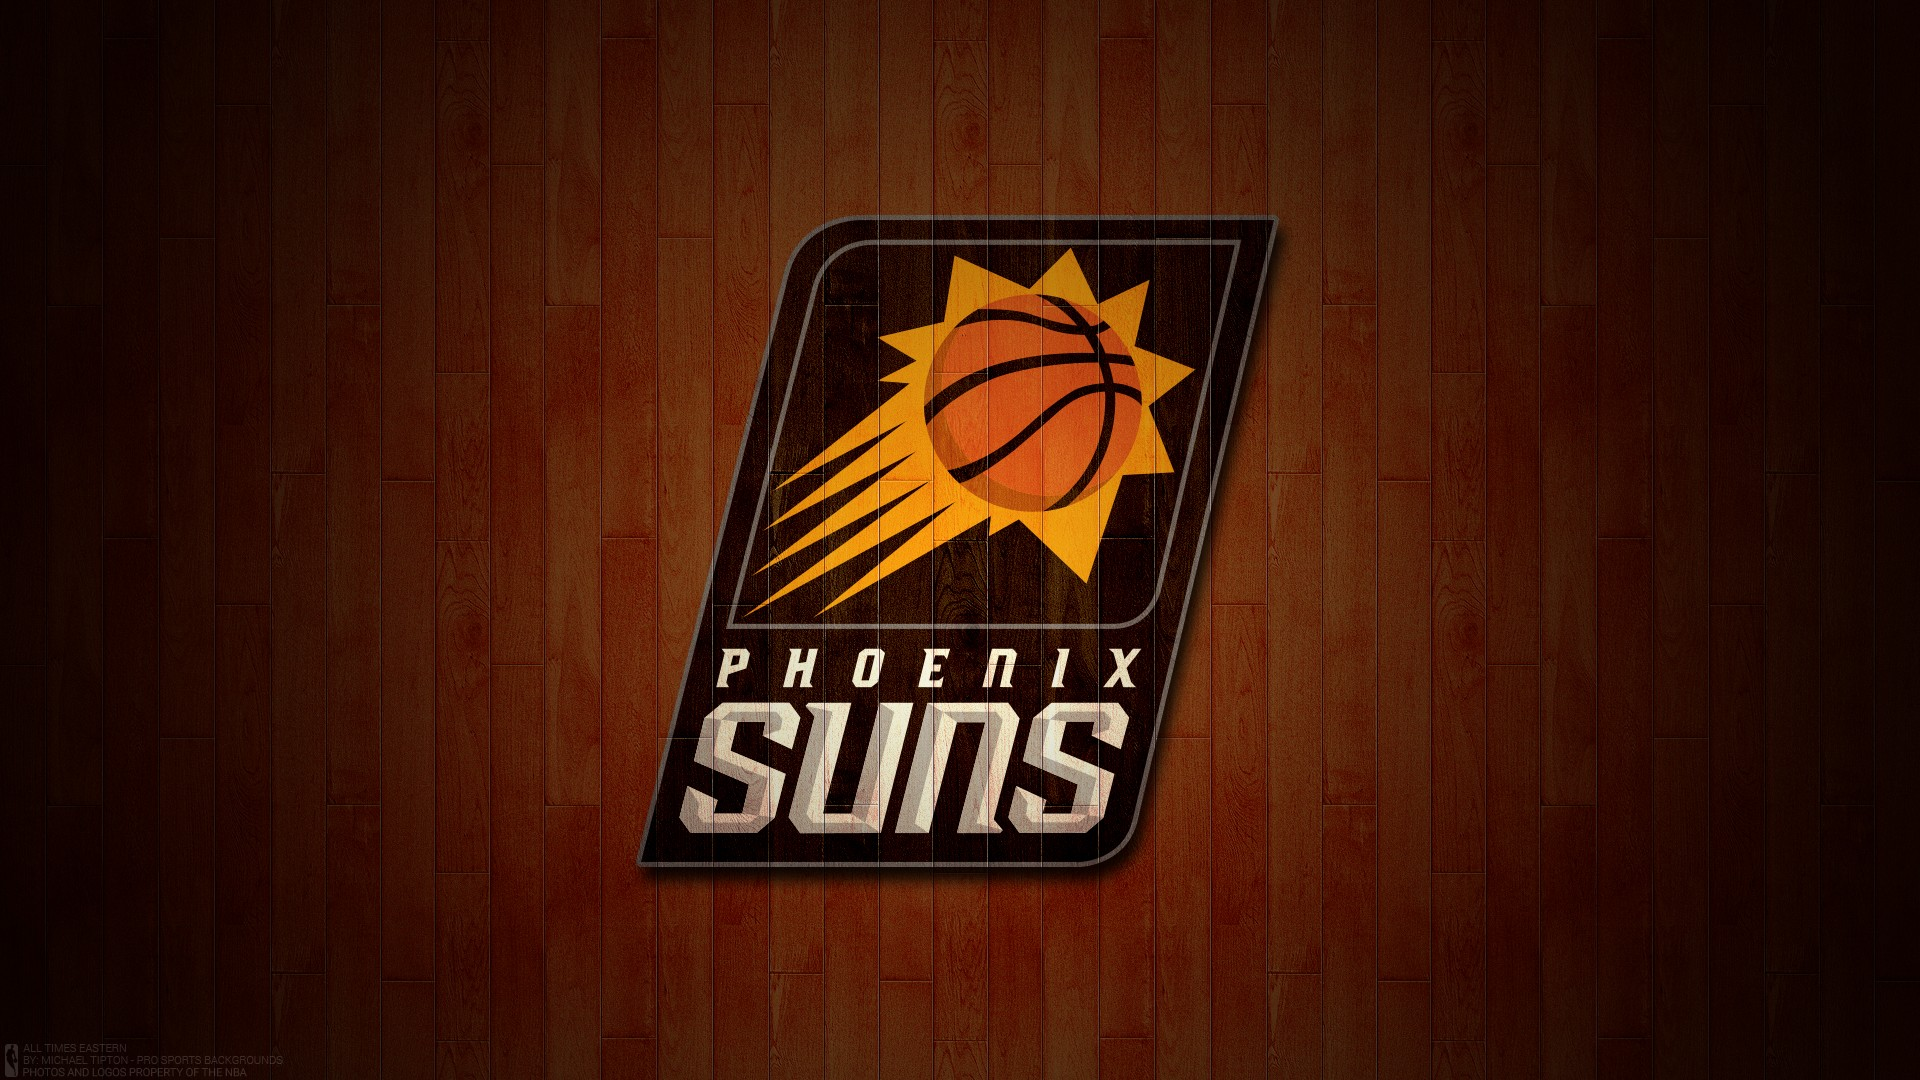 Phoenix Suns Logo Desktop Wallpapers with high-resolution 1920x1080 pixel. You can use this wallpaper for your Desktop Computer Backgrounds, Windows or Mac Screensavers, iPhone Lock screen, Tablet or Android and another Mobile Phone device